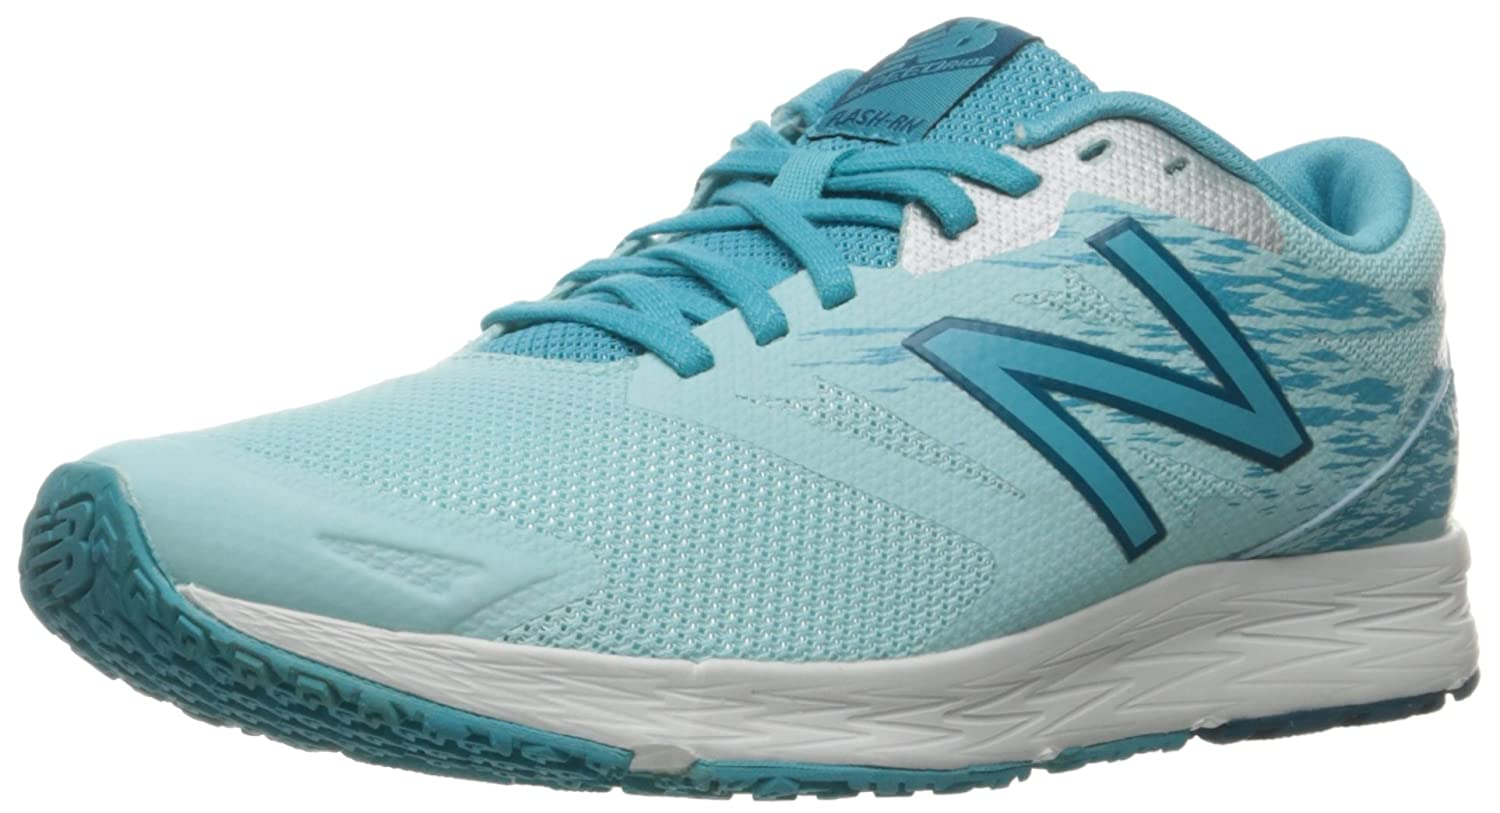 New Balance Flash Run V1, Chaussures de Fitness Femme